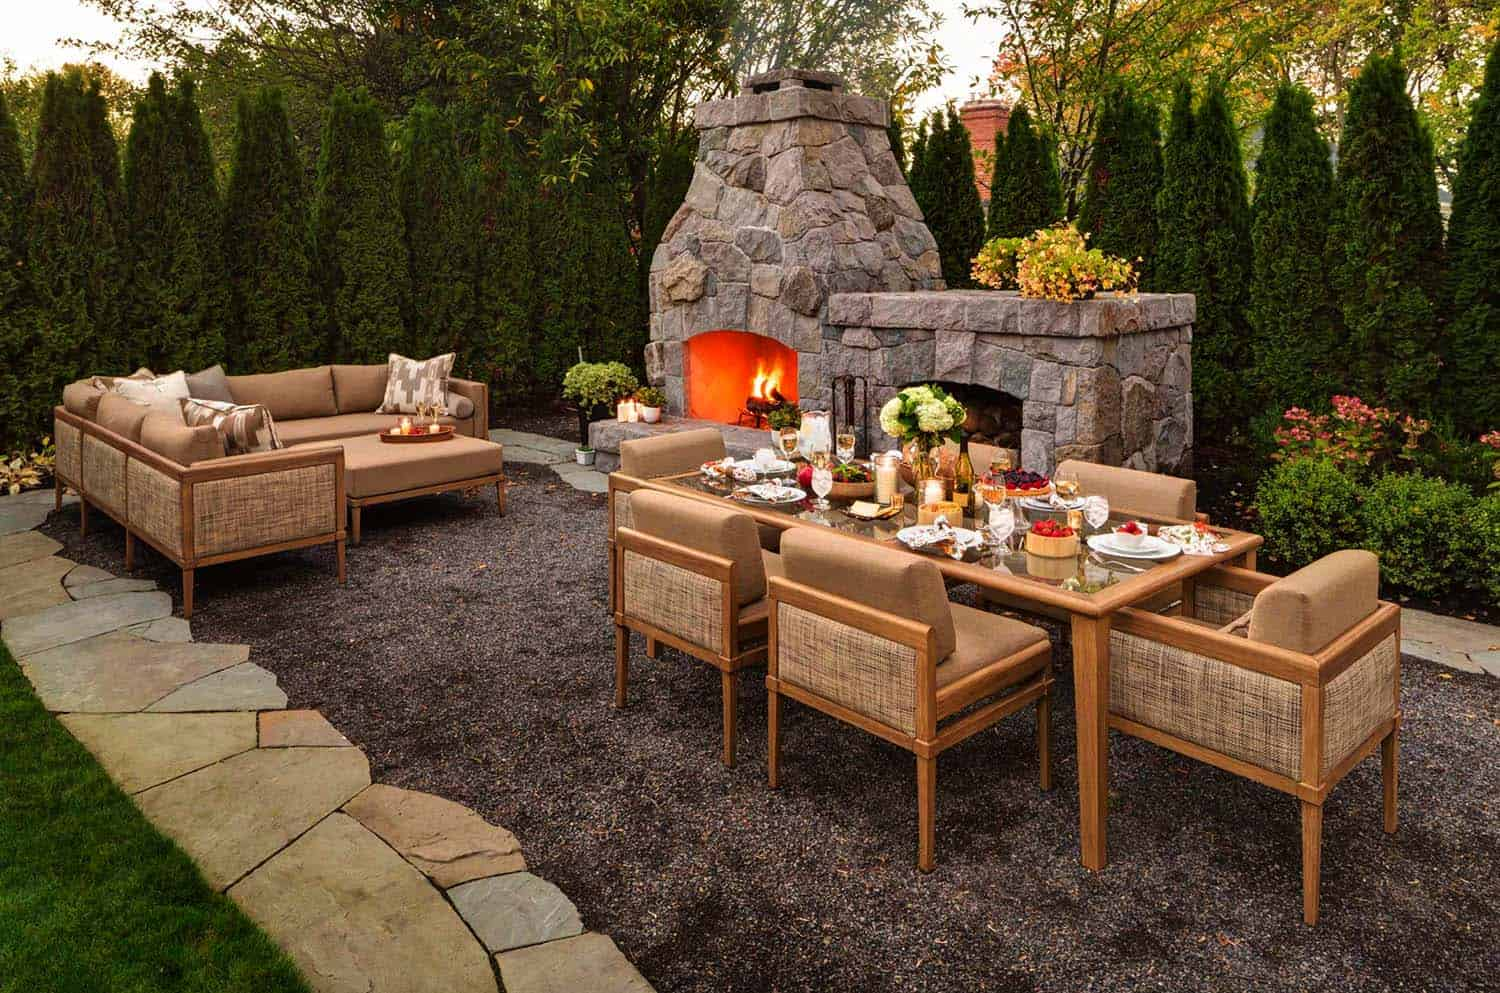 Fabulous Outdoor Patio Ideas 01 1 Kindesign